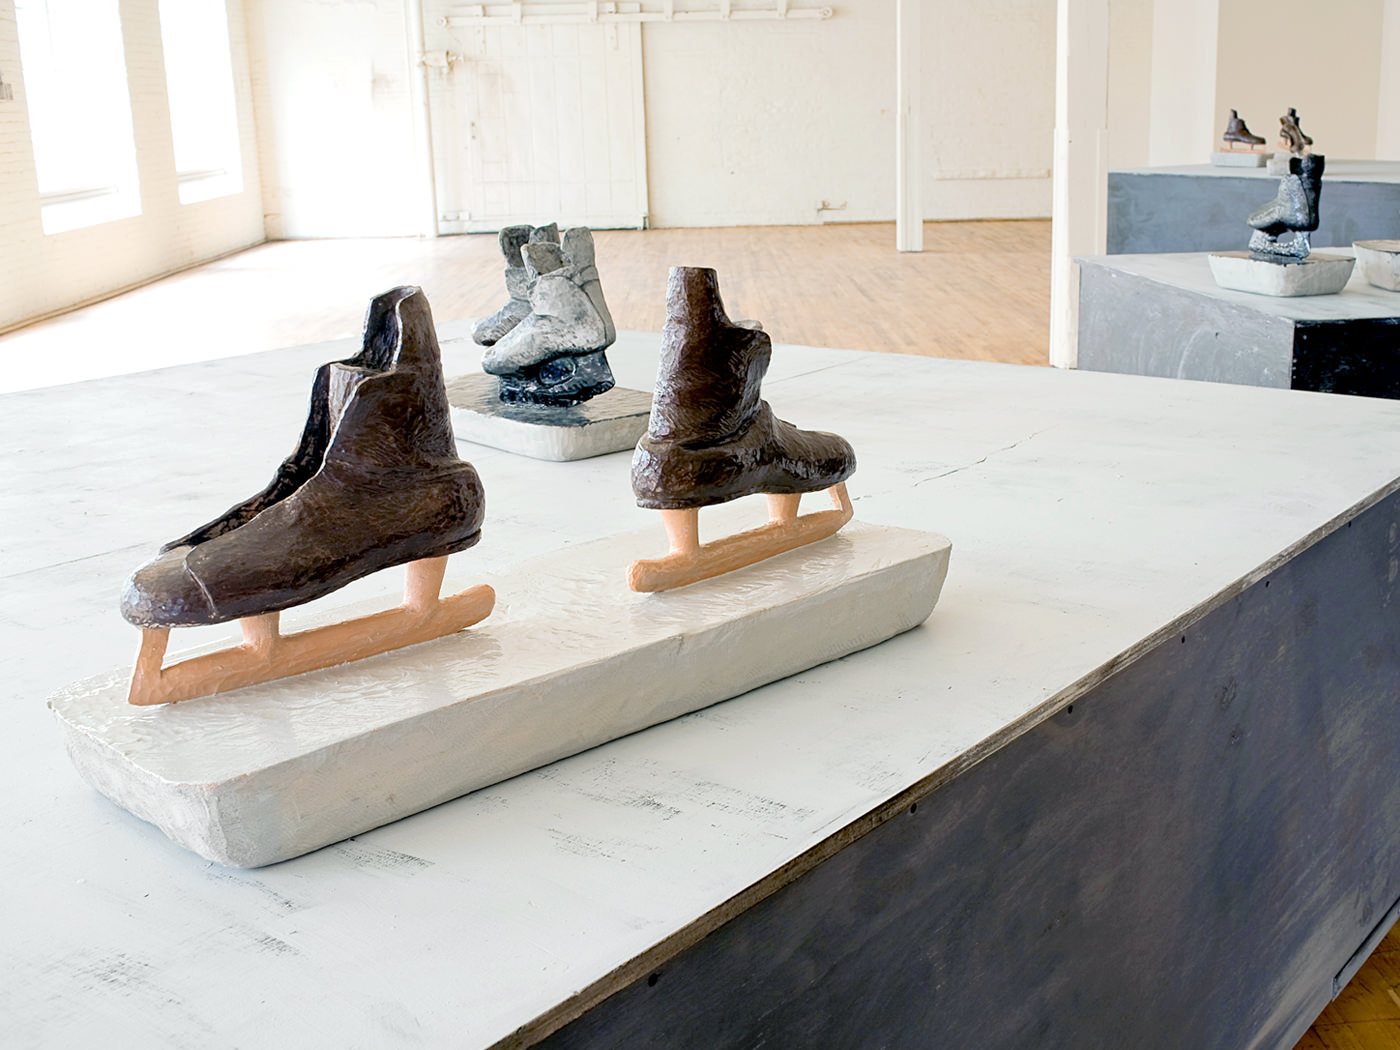 Carved & Painted Wood. Wooden Platforms with Metal Push Bars. 2009.